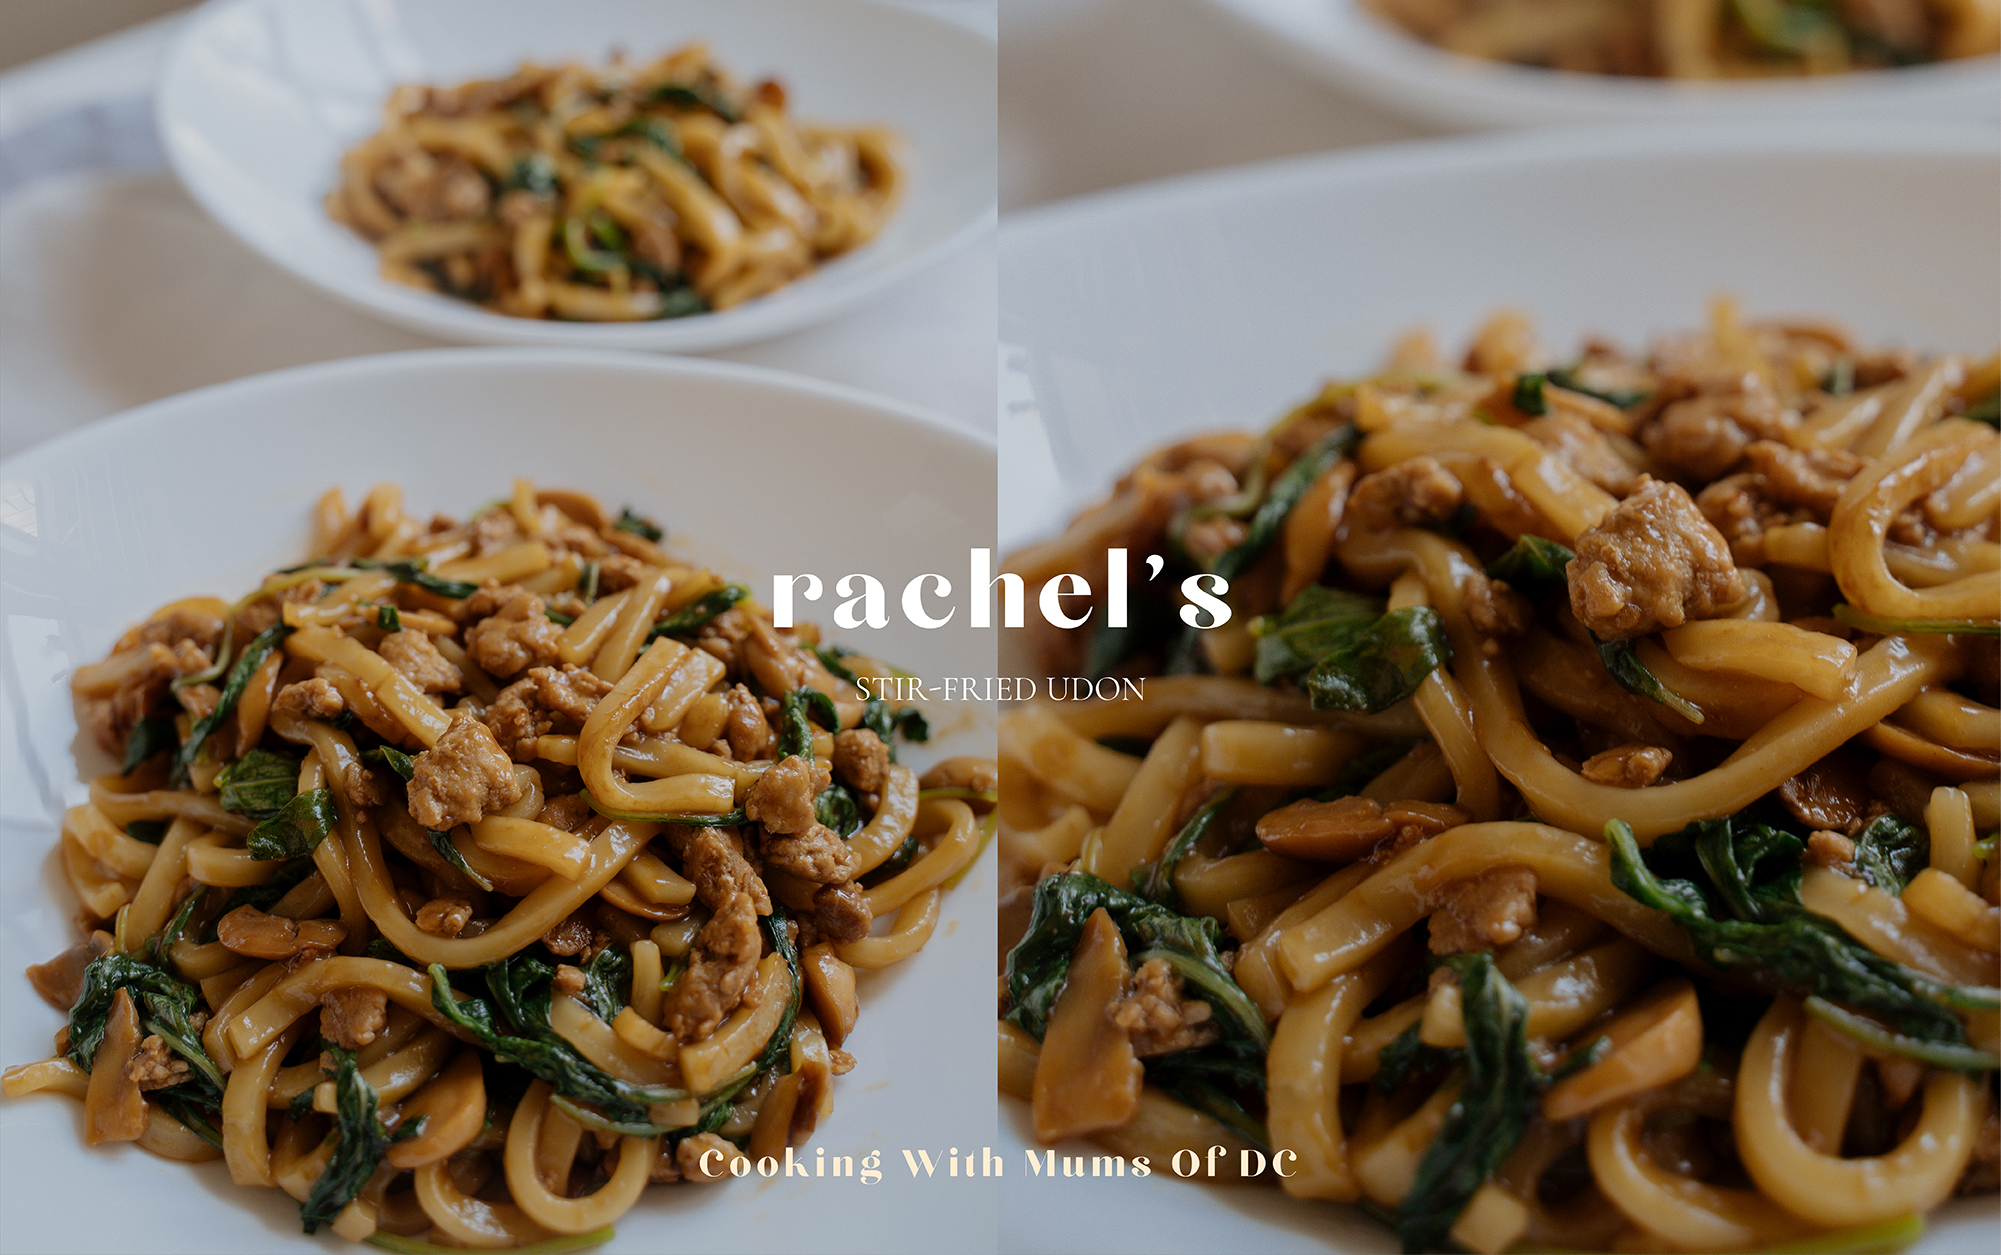 Cooking With Mums Of DC: Rachel's Stir-Fried Udon Recipe